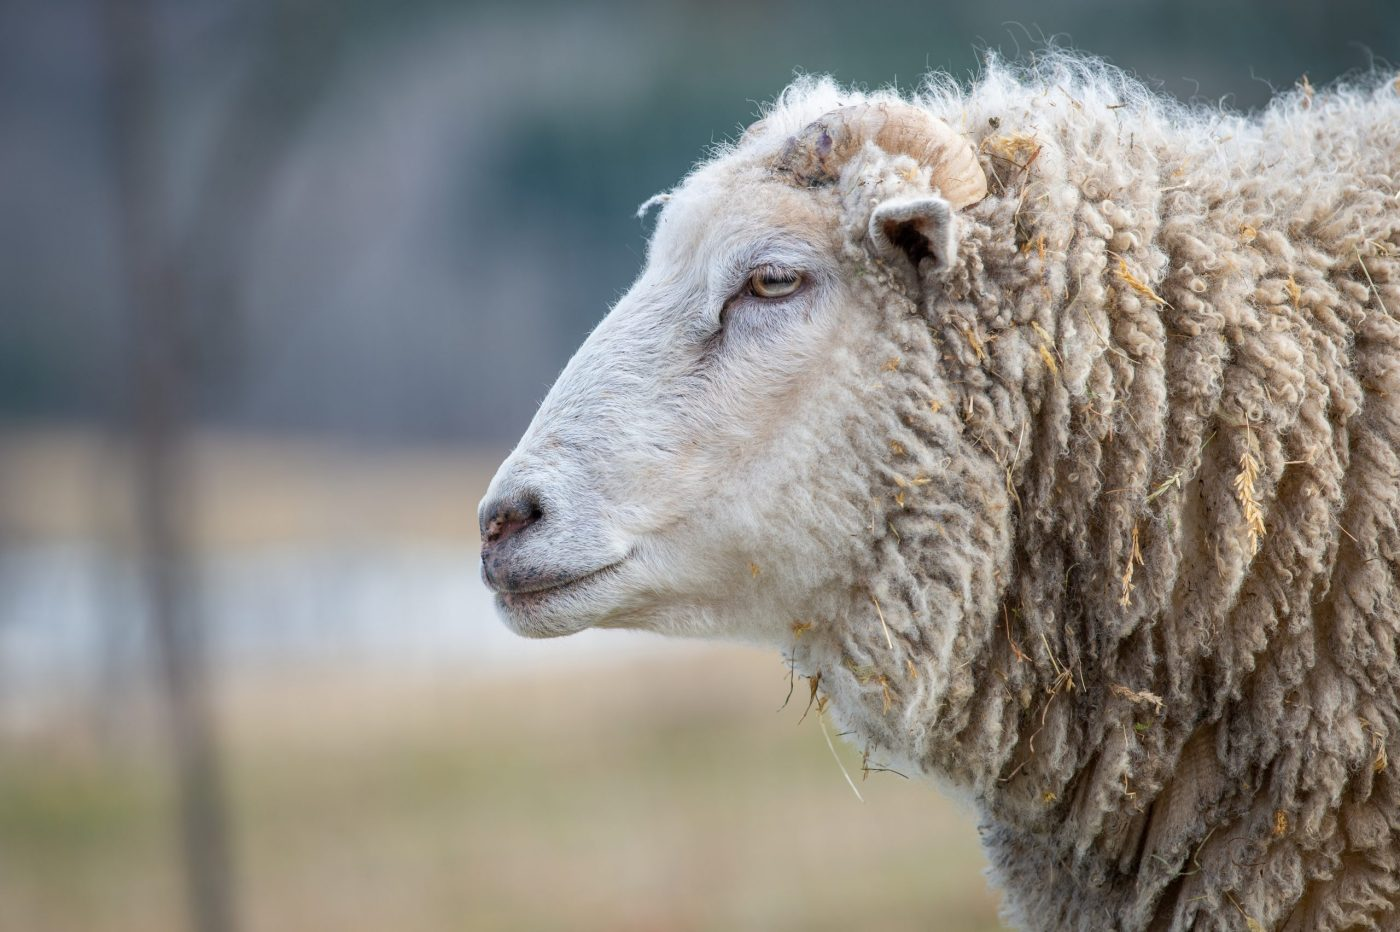 Liam sheep at Farm Sanctuary